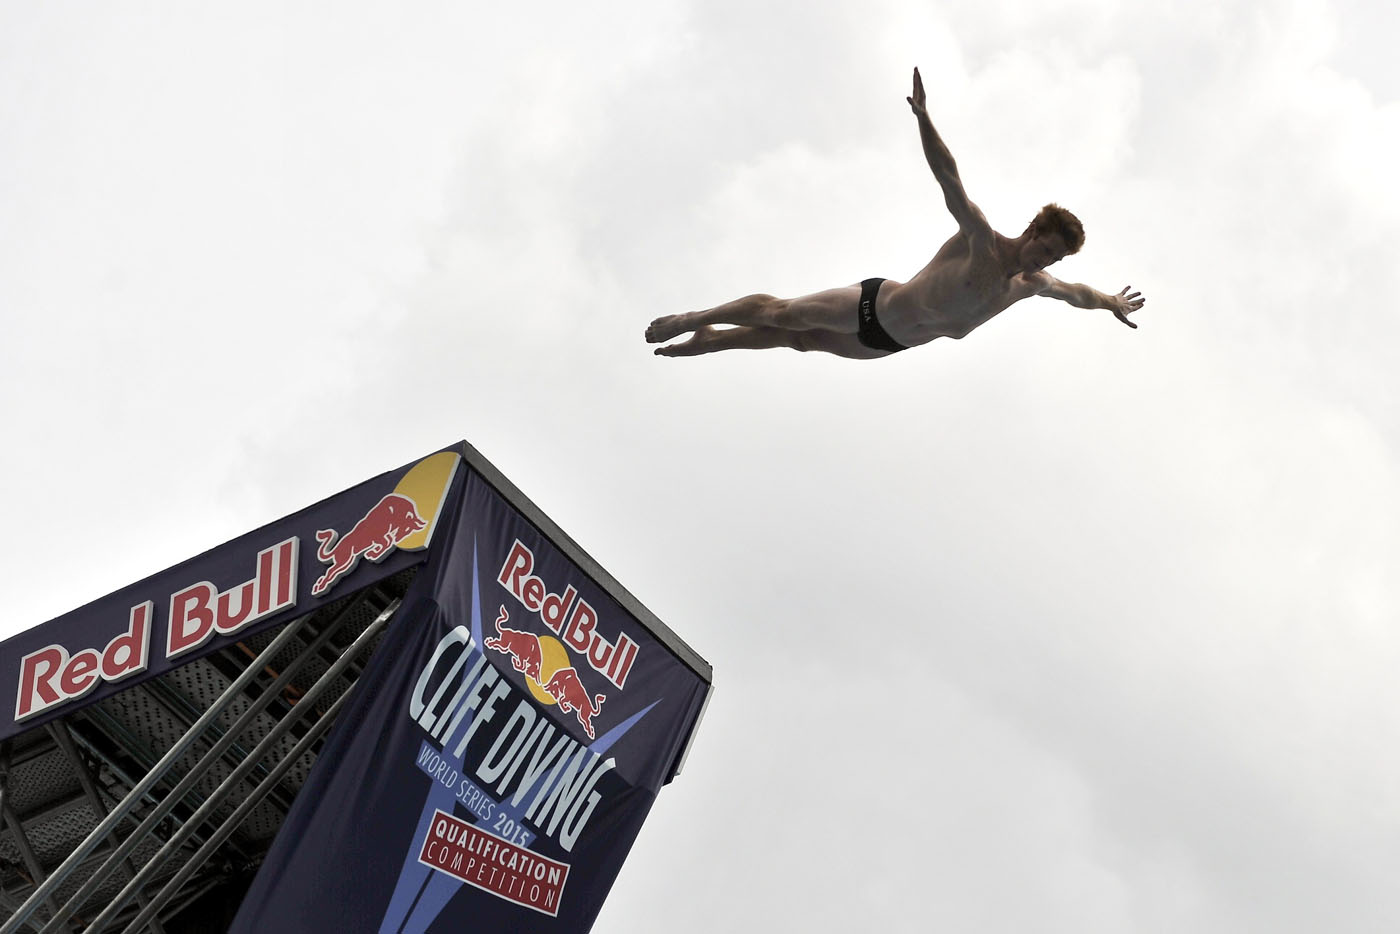 Red bull qualifier cliff diving world series 2015 - Red bull high dive ...